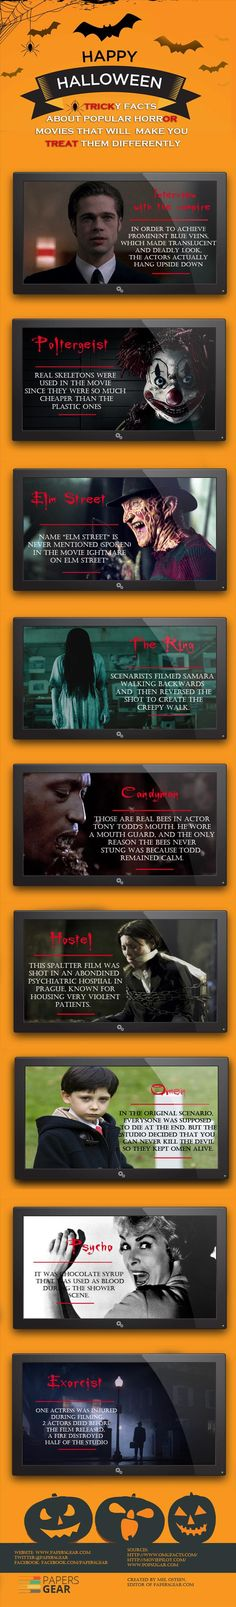 Fun Horror Movie Facts I Bet You Didn't Know - A little hard to read but all pretty interesting Halloween Movies, Halloween Horror, Scary Movies, Horror Movies, Good Movies, Weird Facts, Fun Facts, Detective, Movie Facts